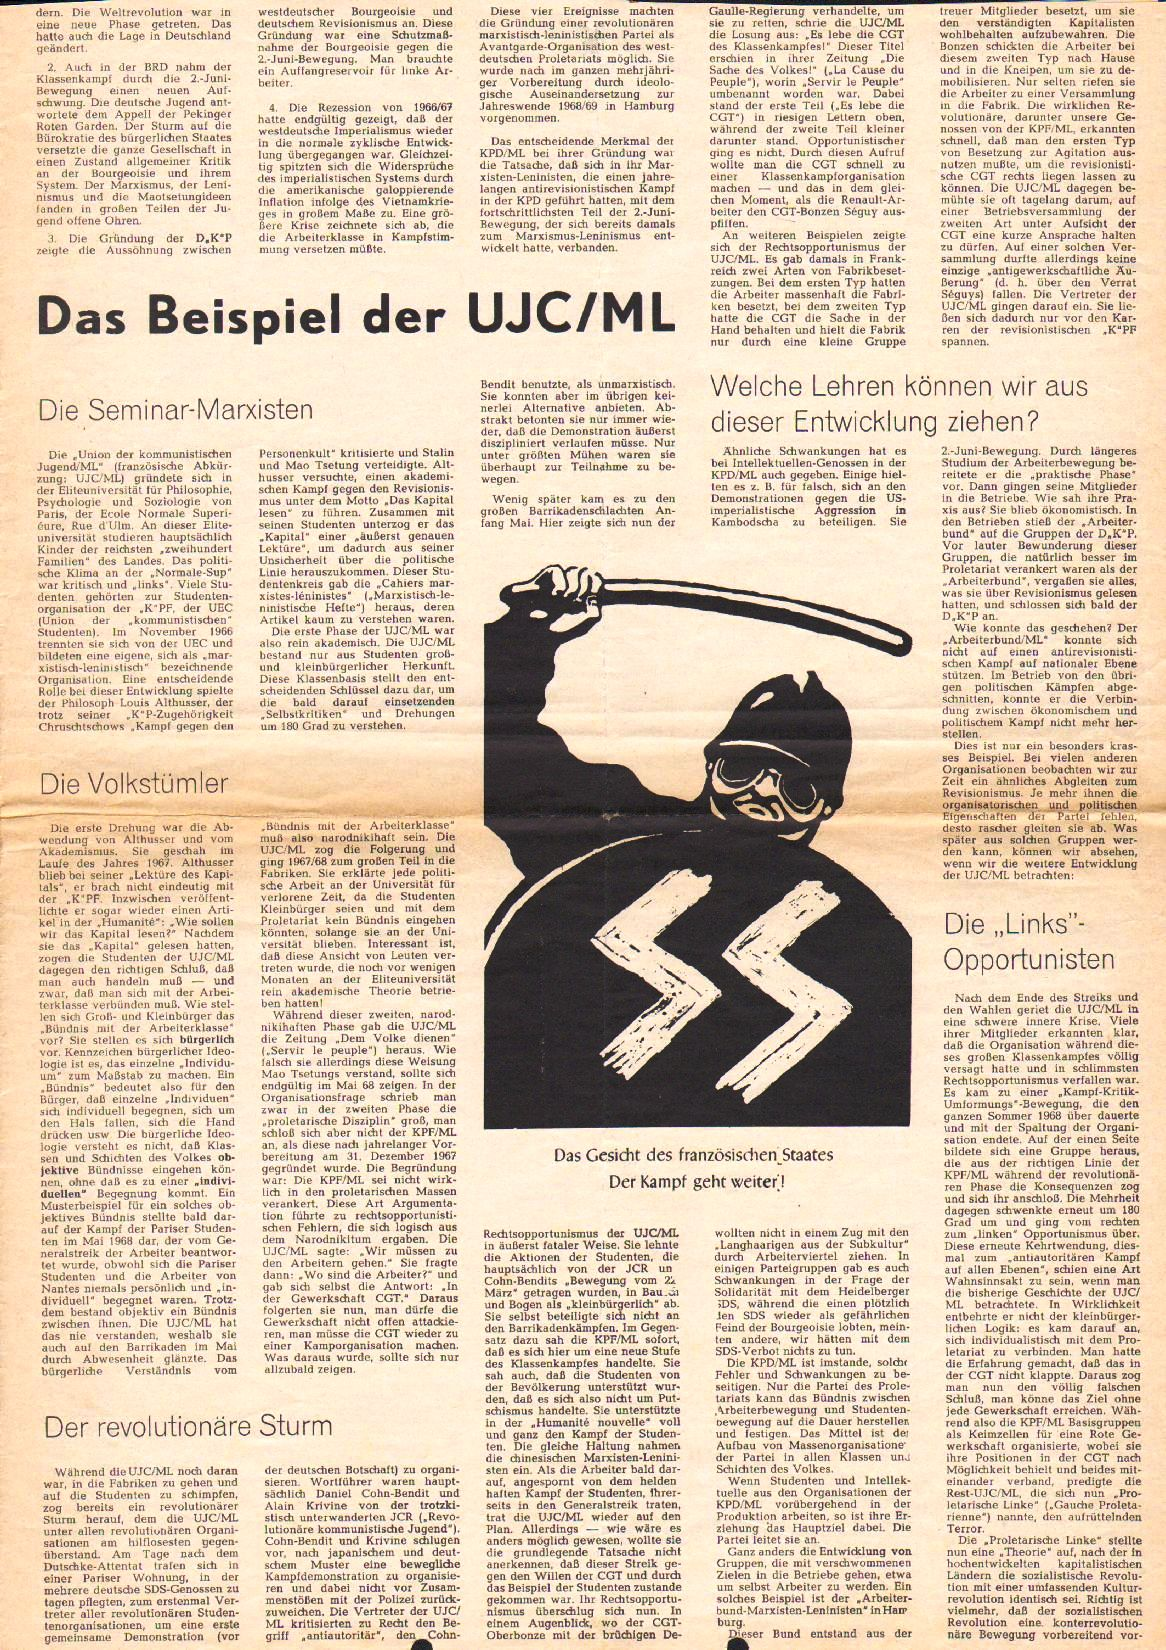 Roter Morgen, 4. Jg., August 1970, Nr. 7, Seite 5